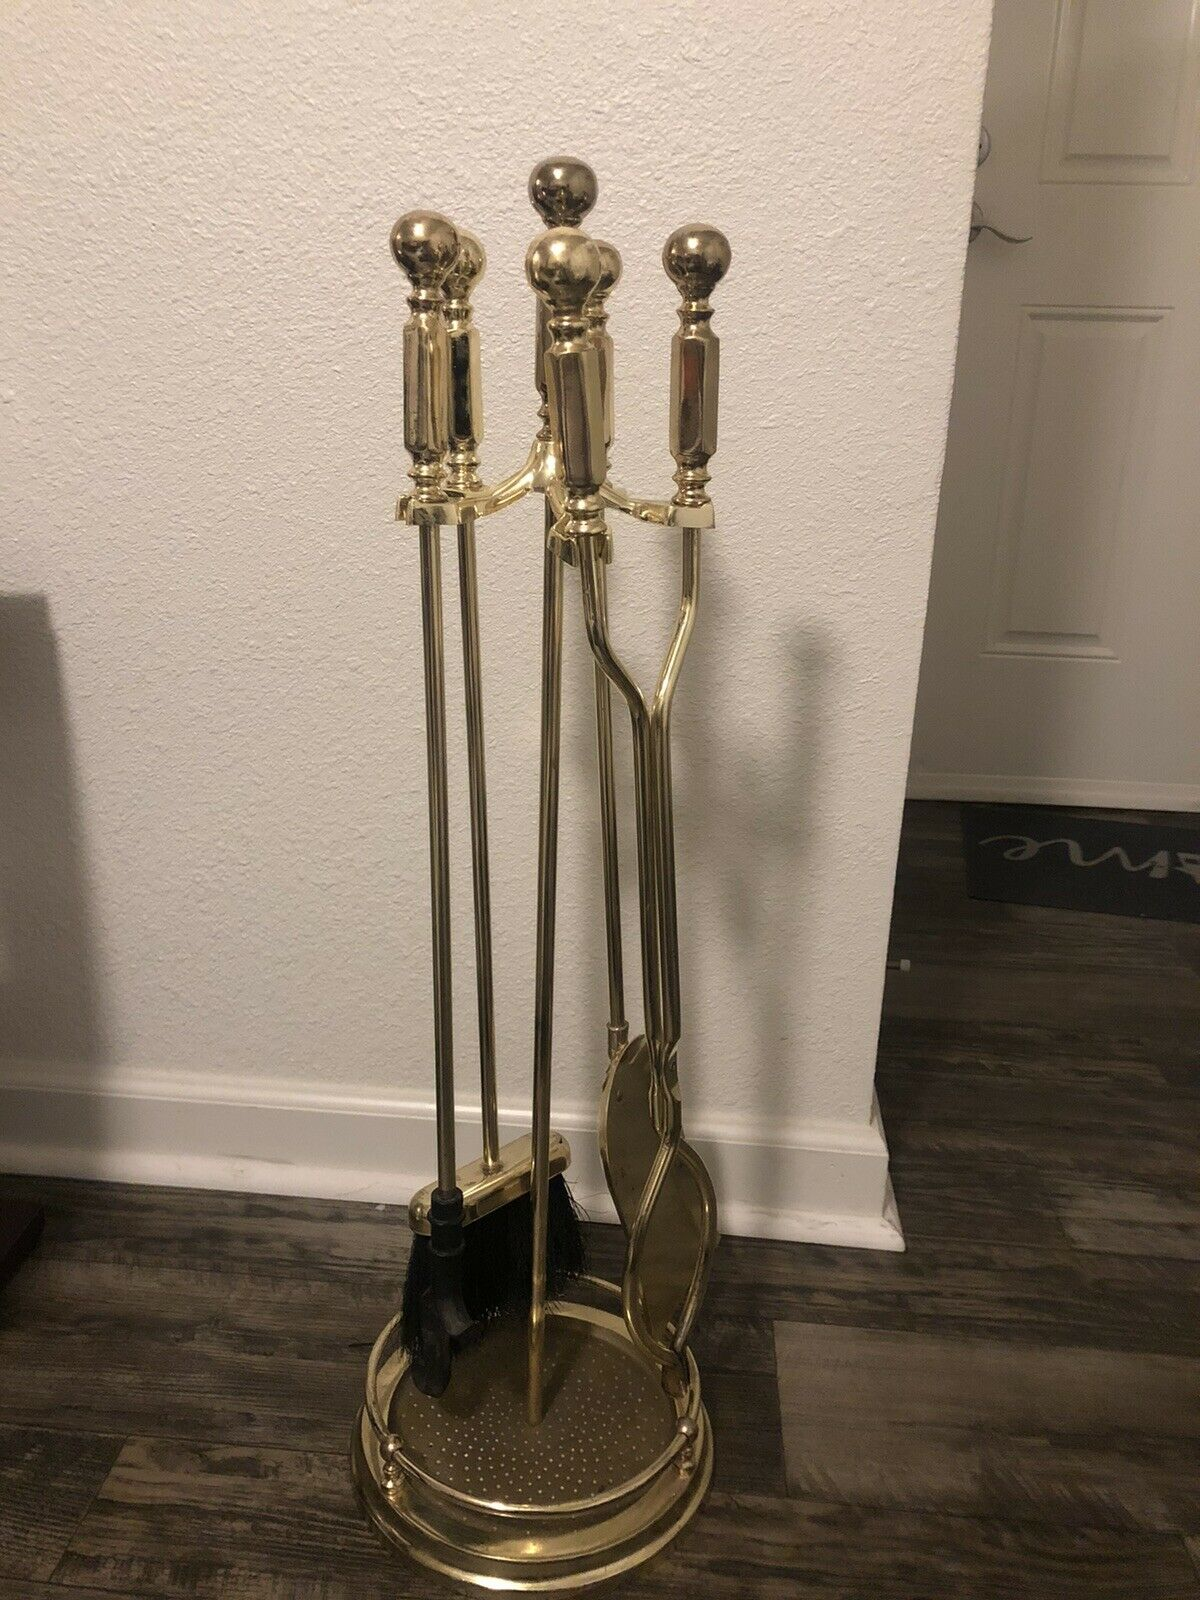 Vintage Brass Fireplace Tools Set 5 Piece Stand Poker Tongs